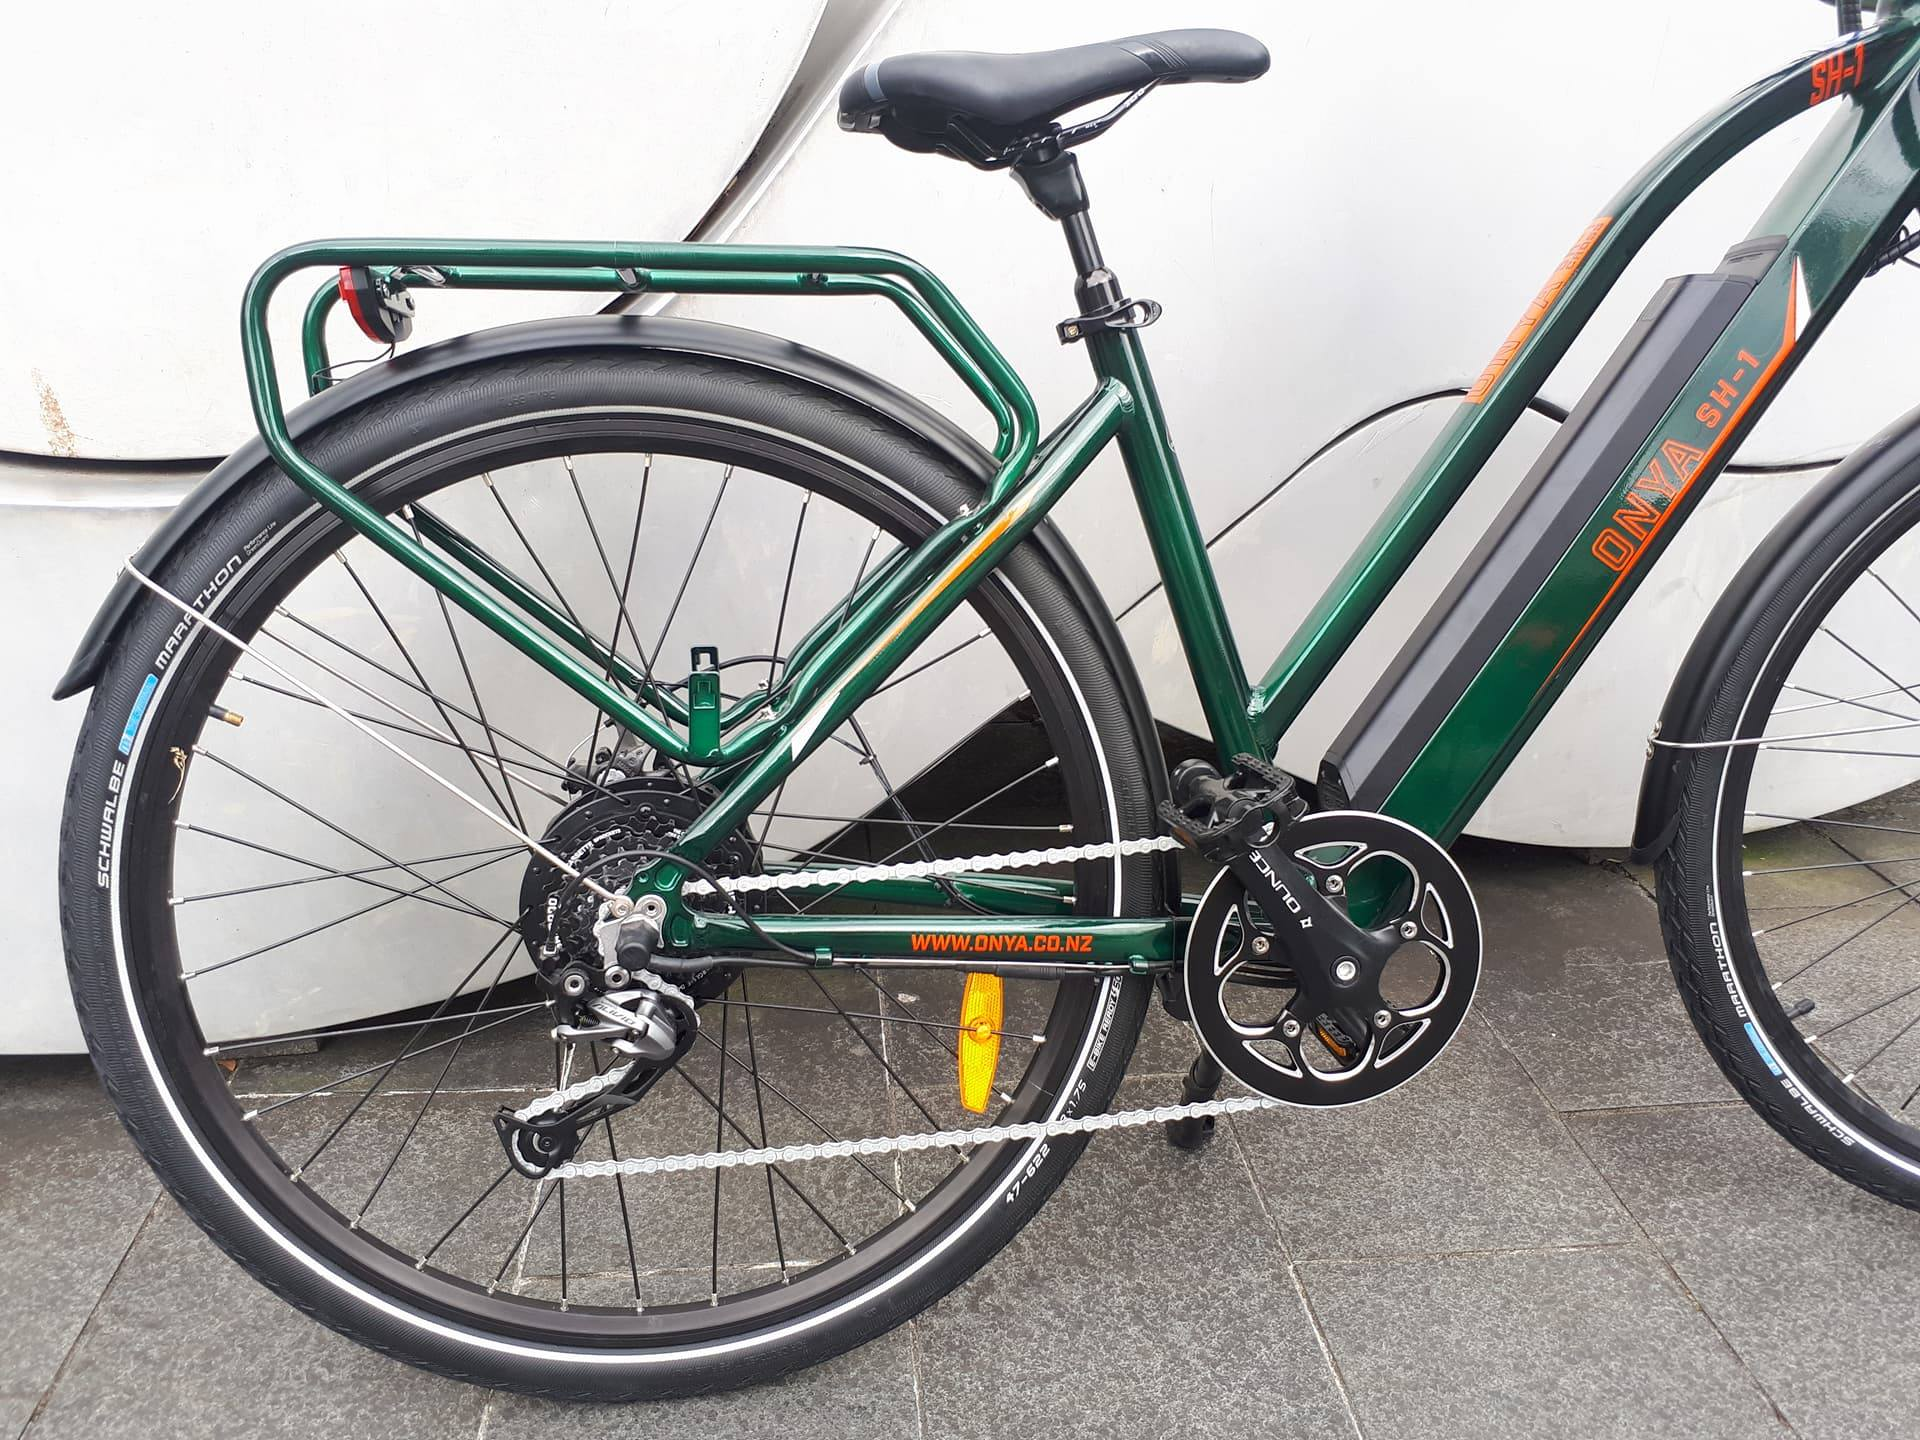 E bike ONYA SH1 Green Back